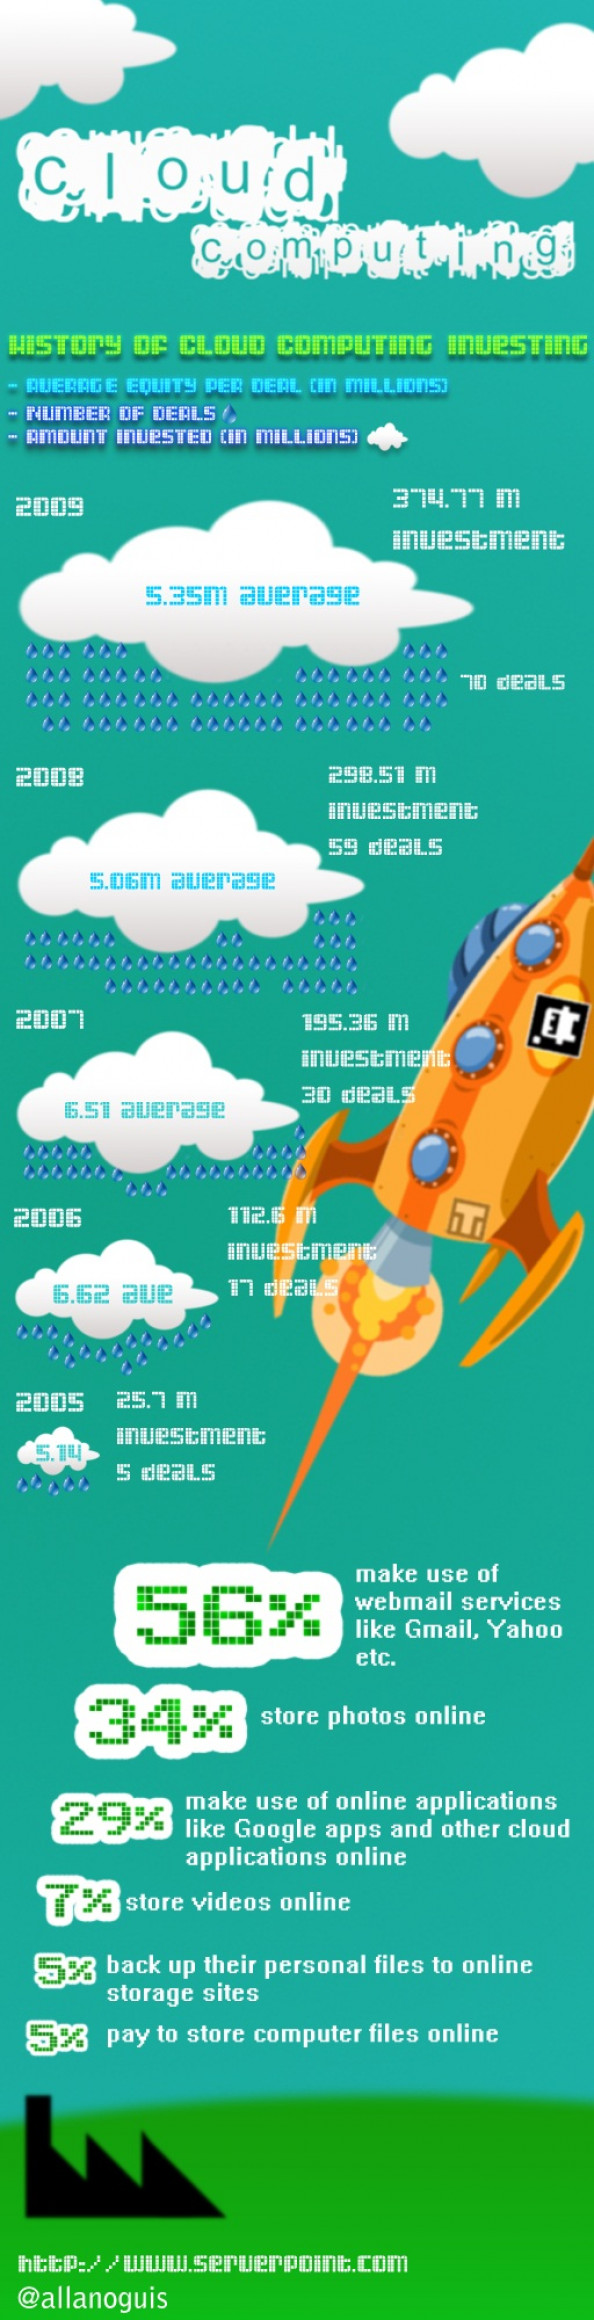 History of Cloud Computing Investing Infographic